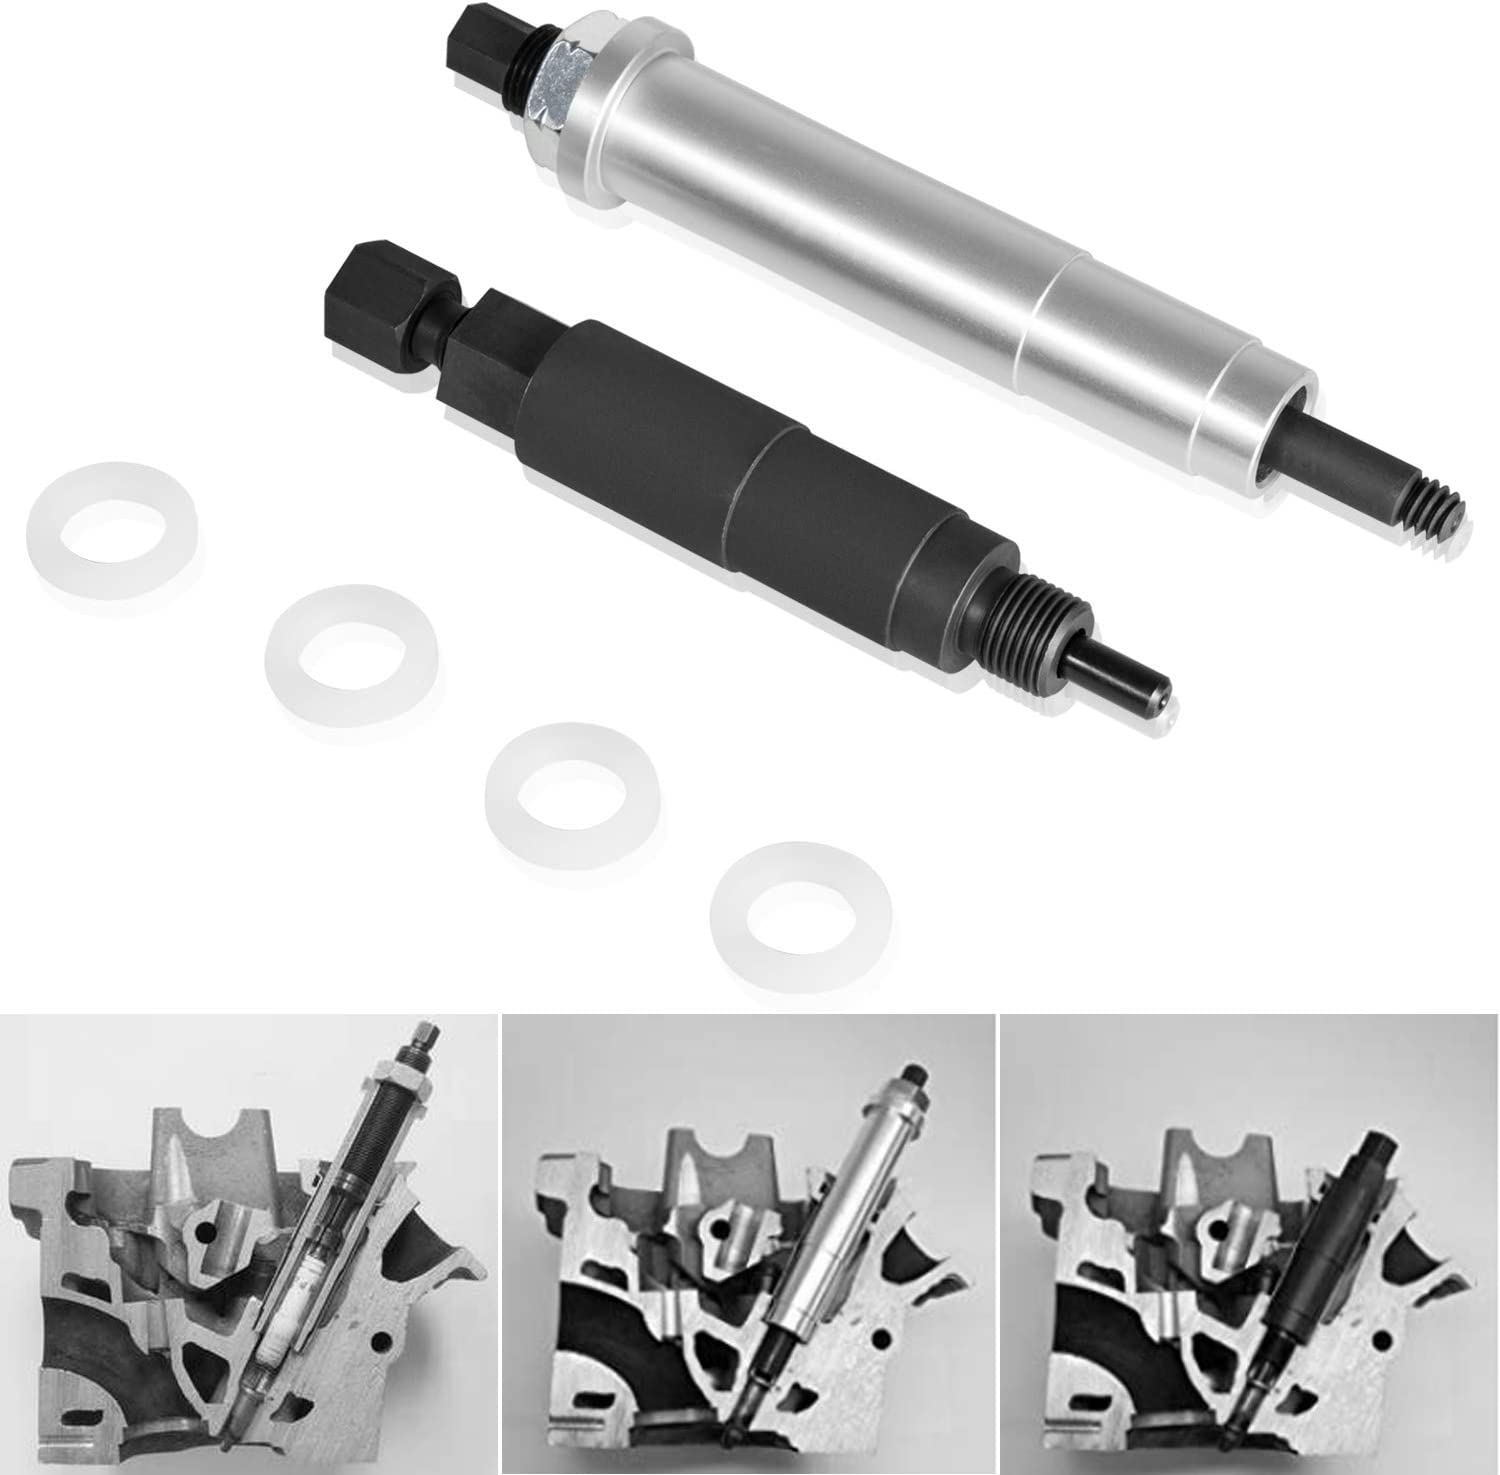 3//8-Inch Expert E040217 6 Point Universal Impact Socket with 1//2-Inch Drive